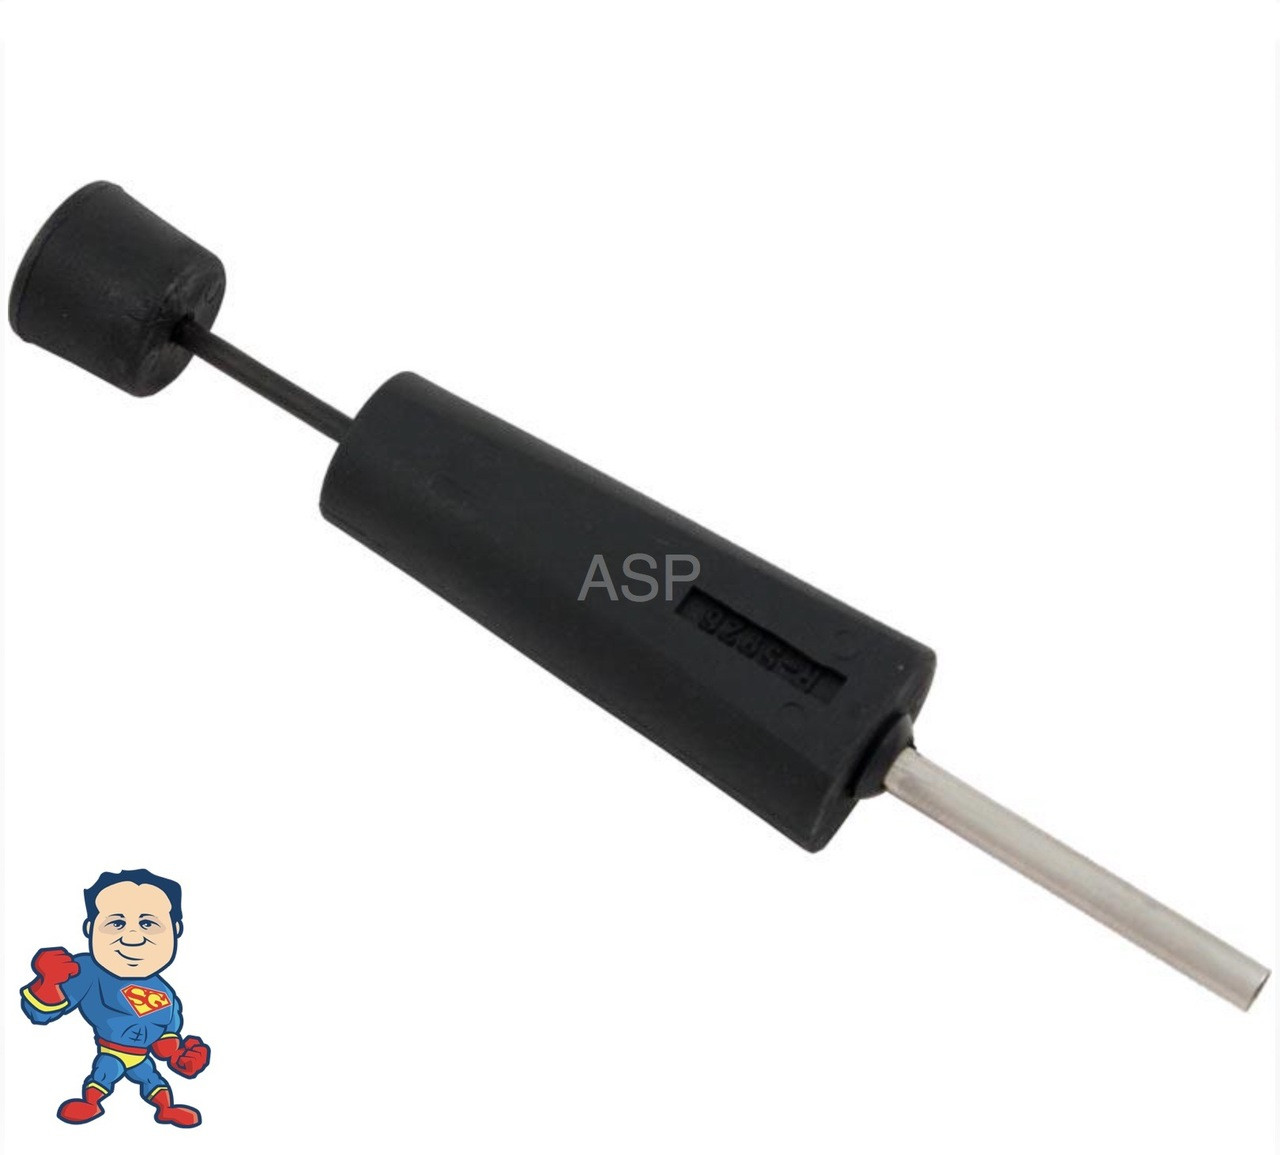 AMP Style Connector Tool for Pin Removal